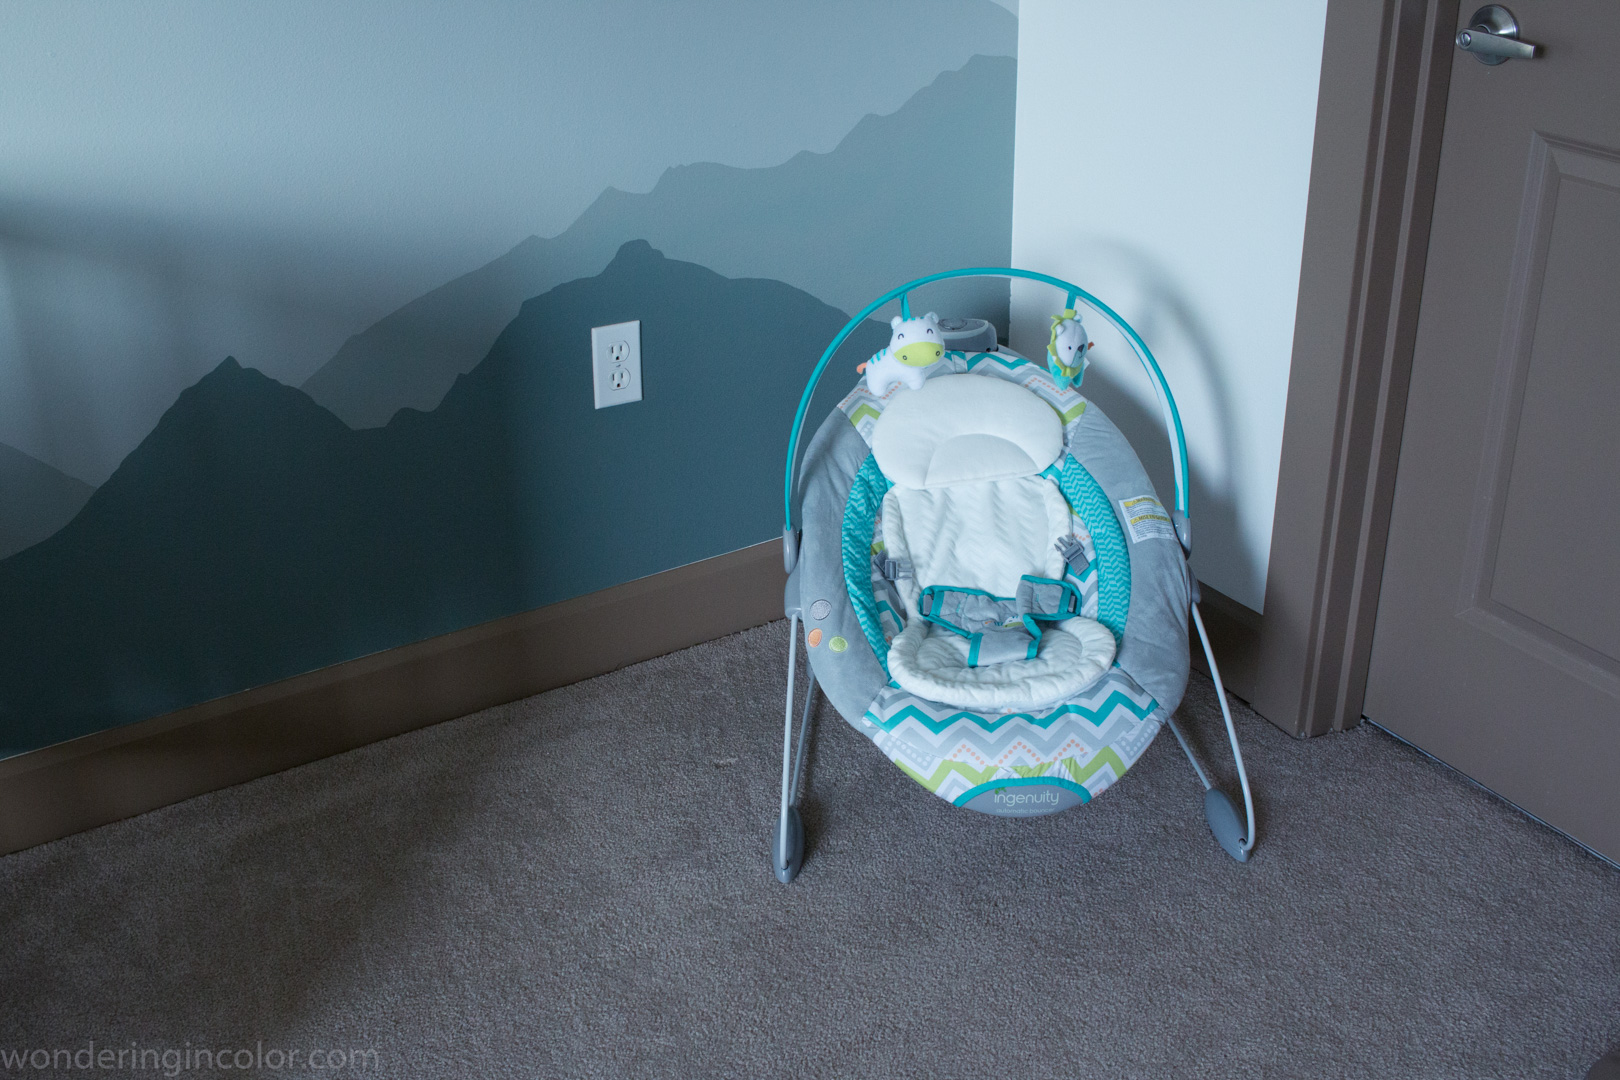 Pacific-northwest-inspired-nursery-styling (7 of 14).jpg